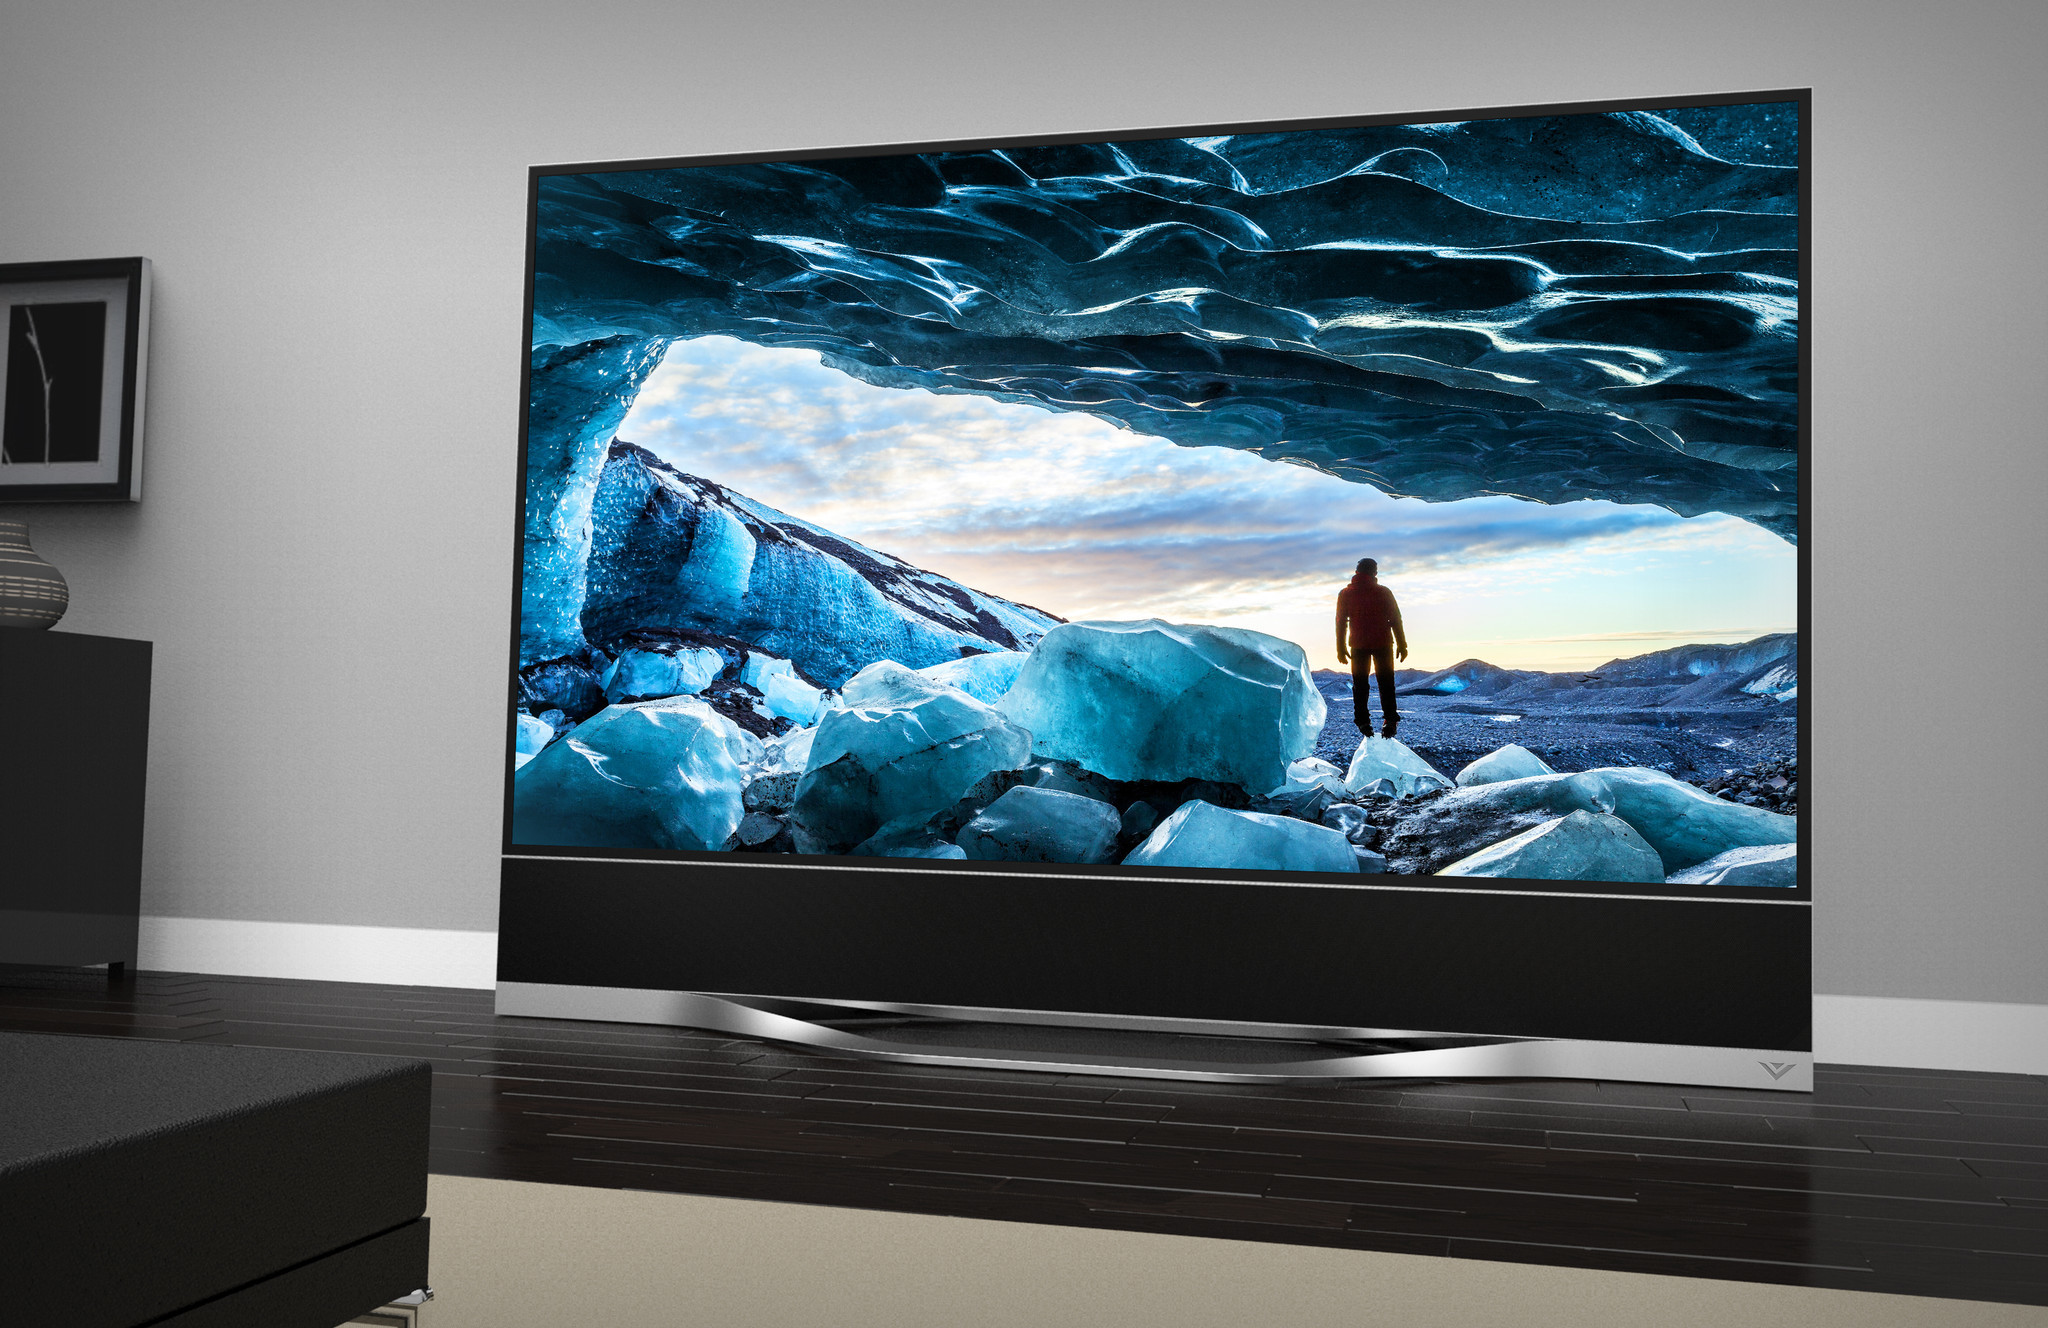 ces 2014 vizio announces 120 inch ultra hd tv la times. Black Bedroom Furniture Sets. Home Design Ideas